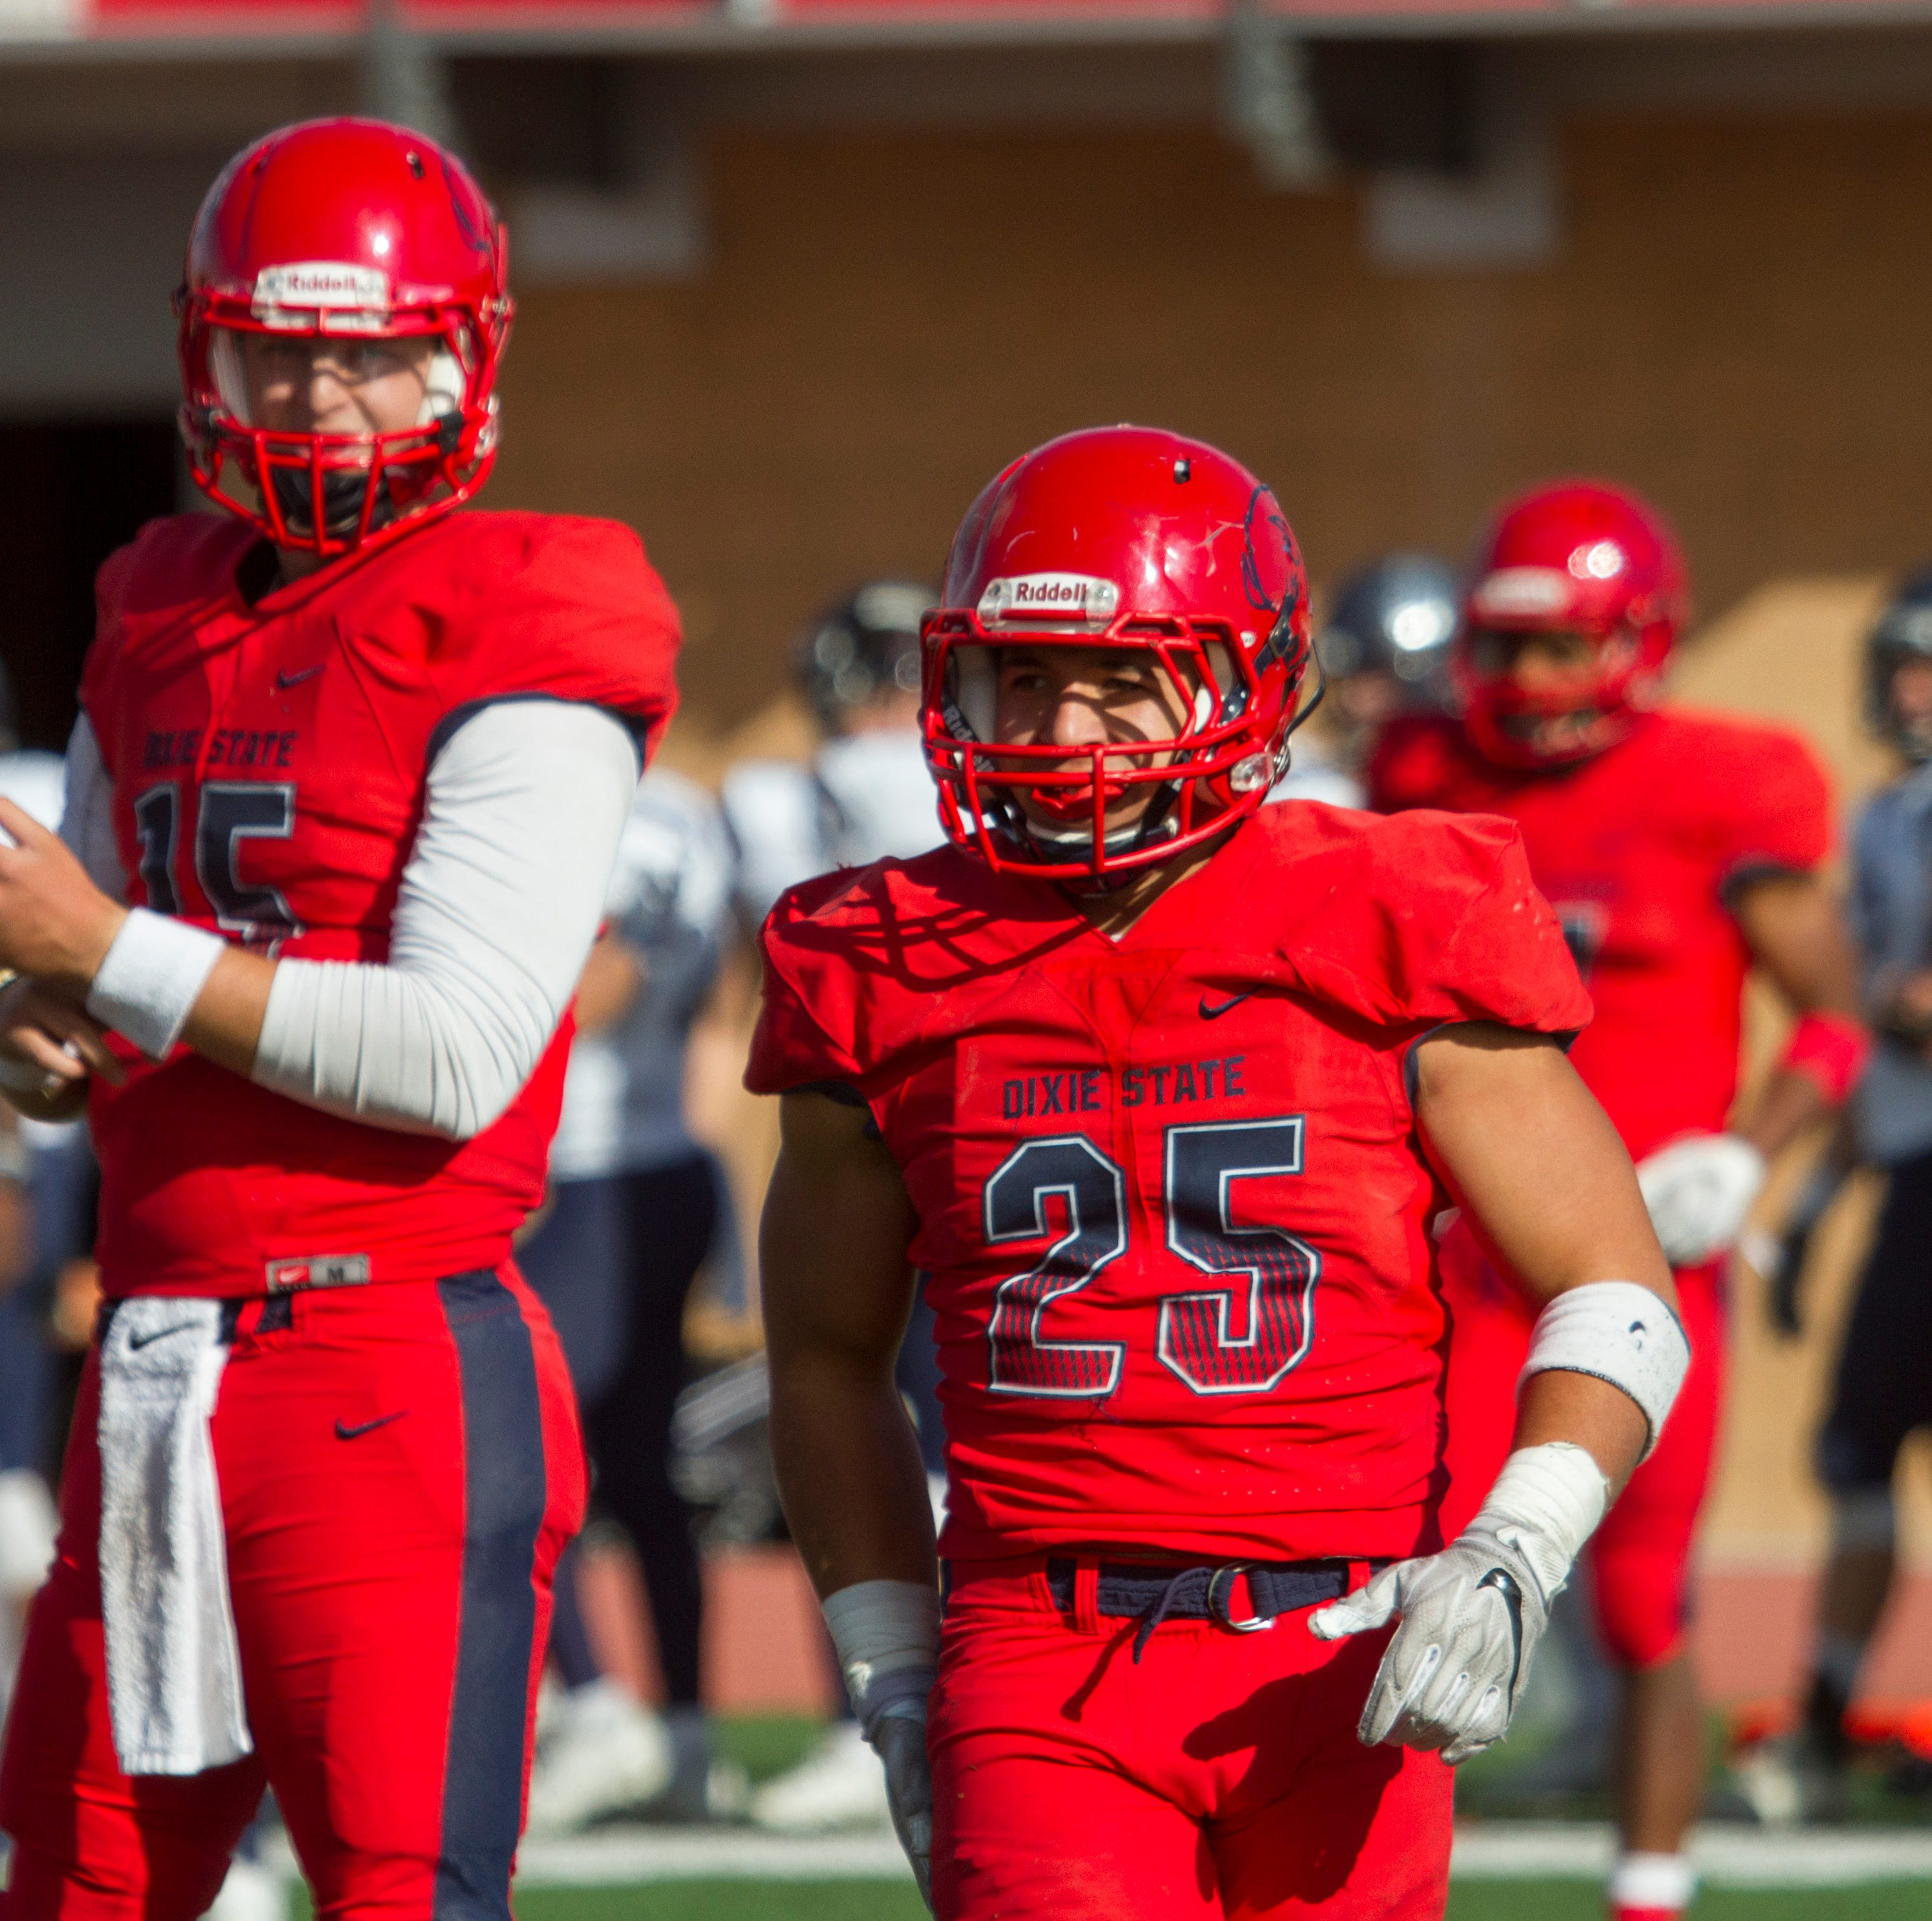 Lauago sets record, Dixie State cruises to win in final game of the season